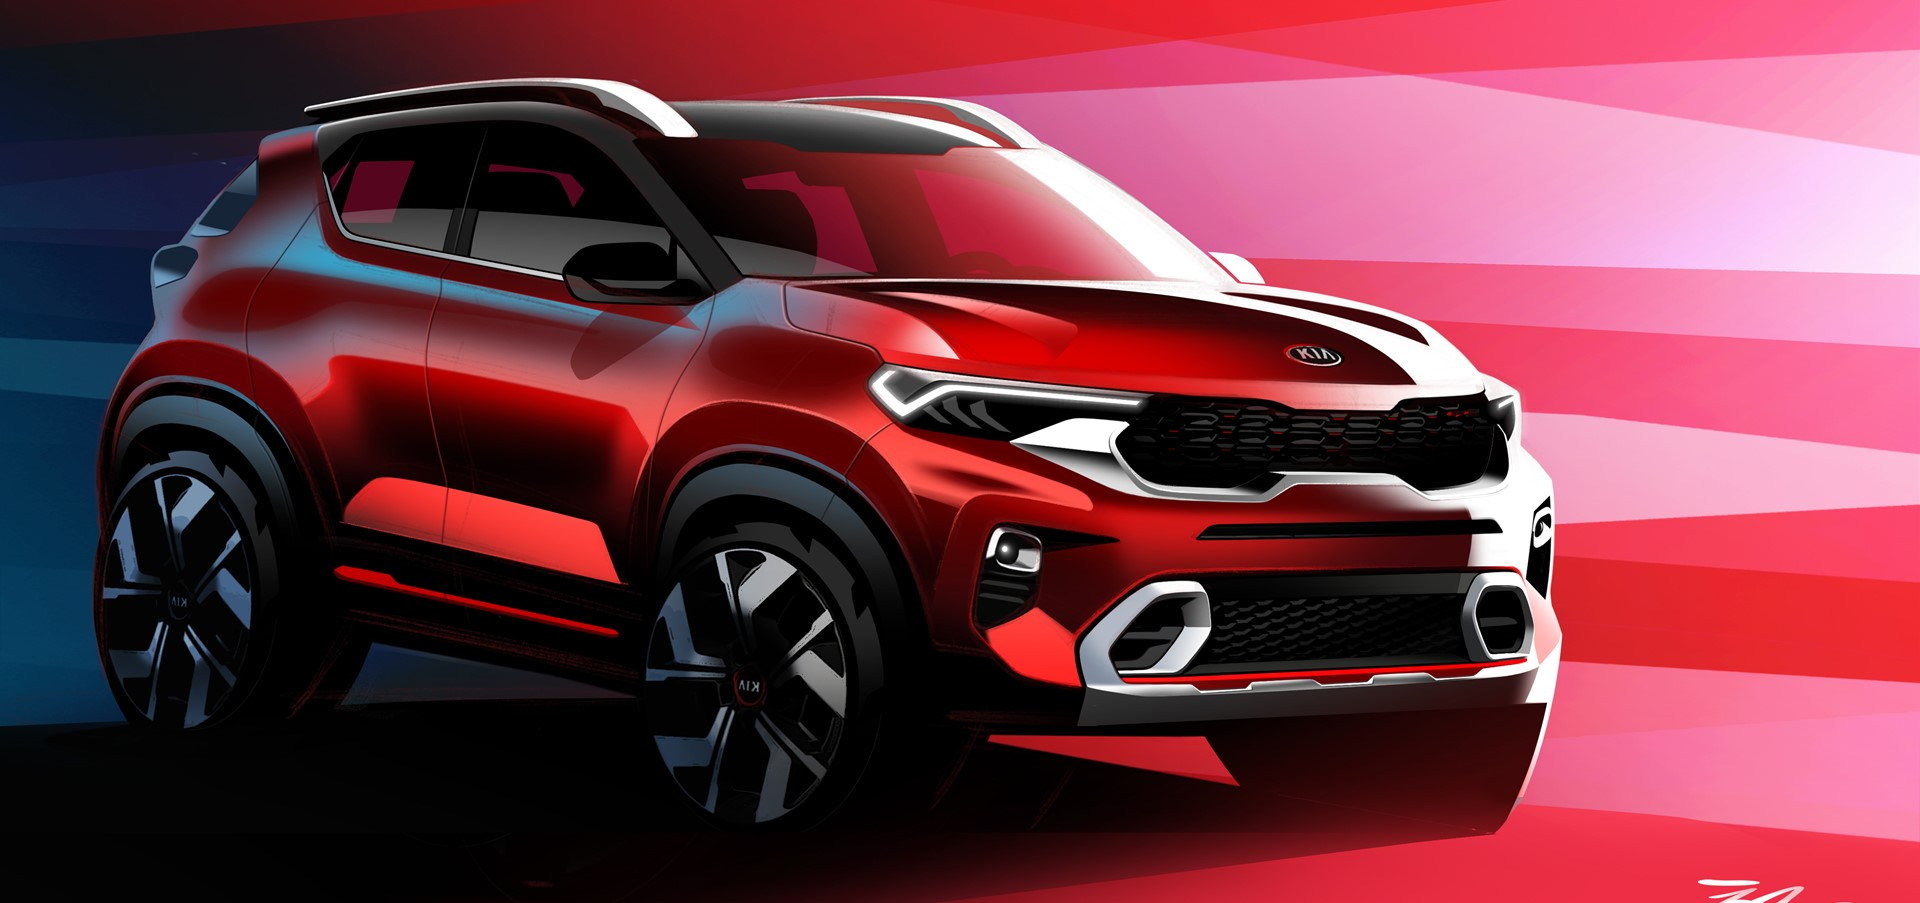 Kia Motors India releases official images of